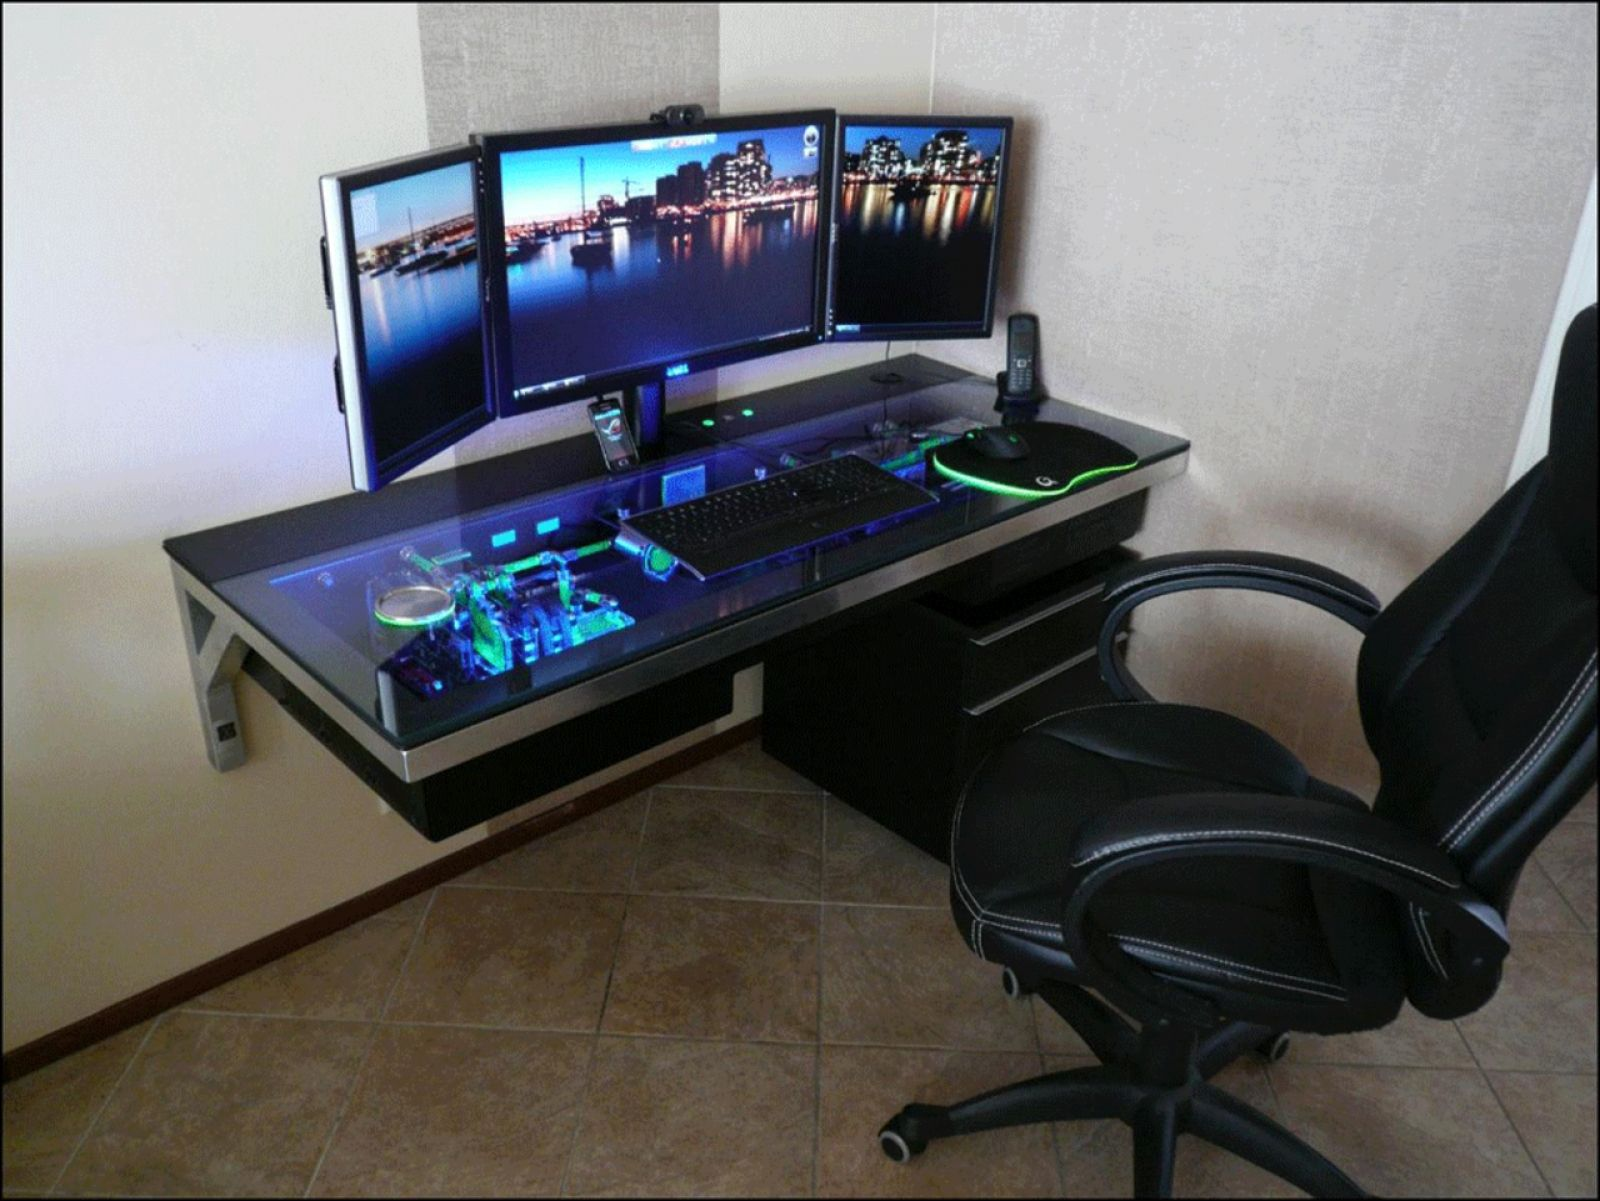 gaming desks gaming desks pinterest diy computer desk gaming rh pinterest com Build Your Own Gaming Desk Gaming Computer Desk Plans